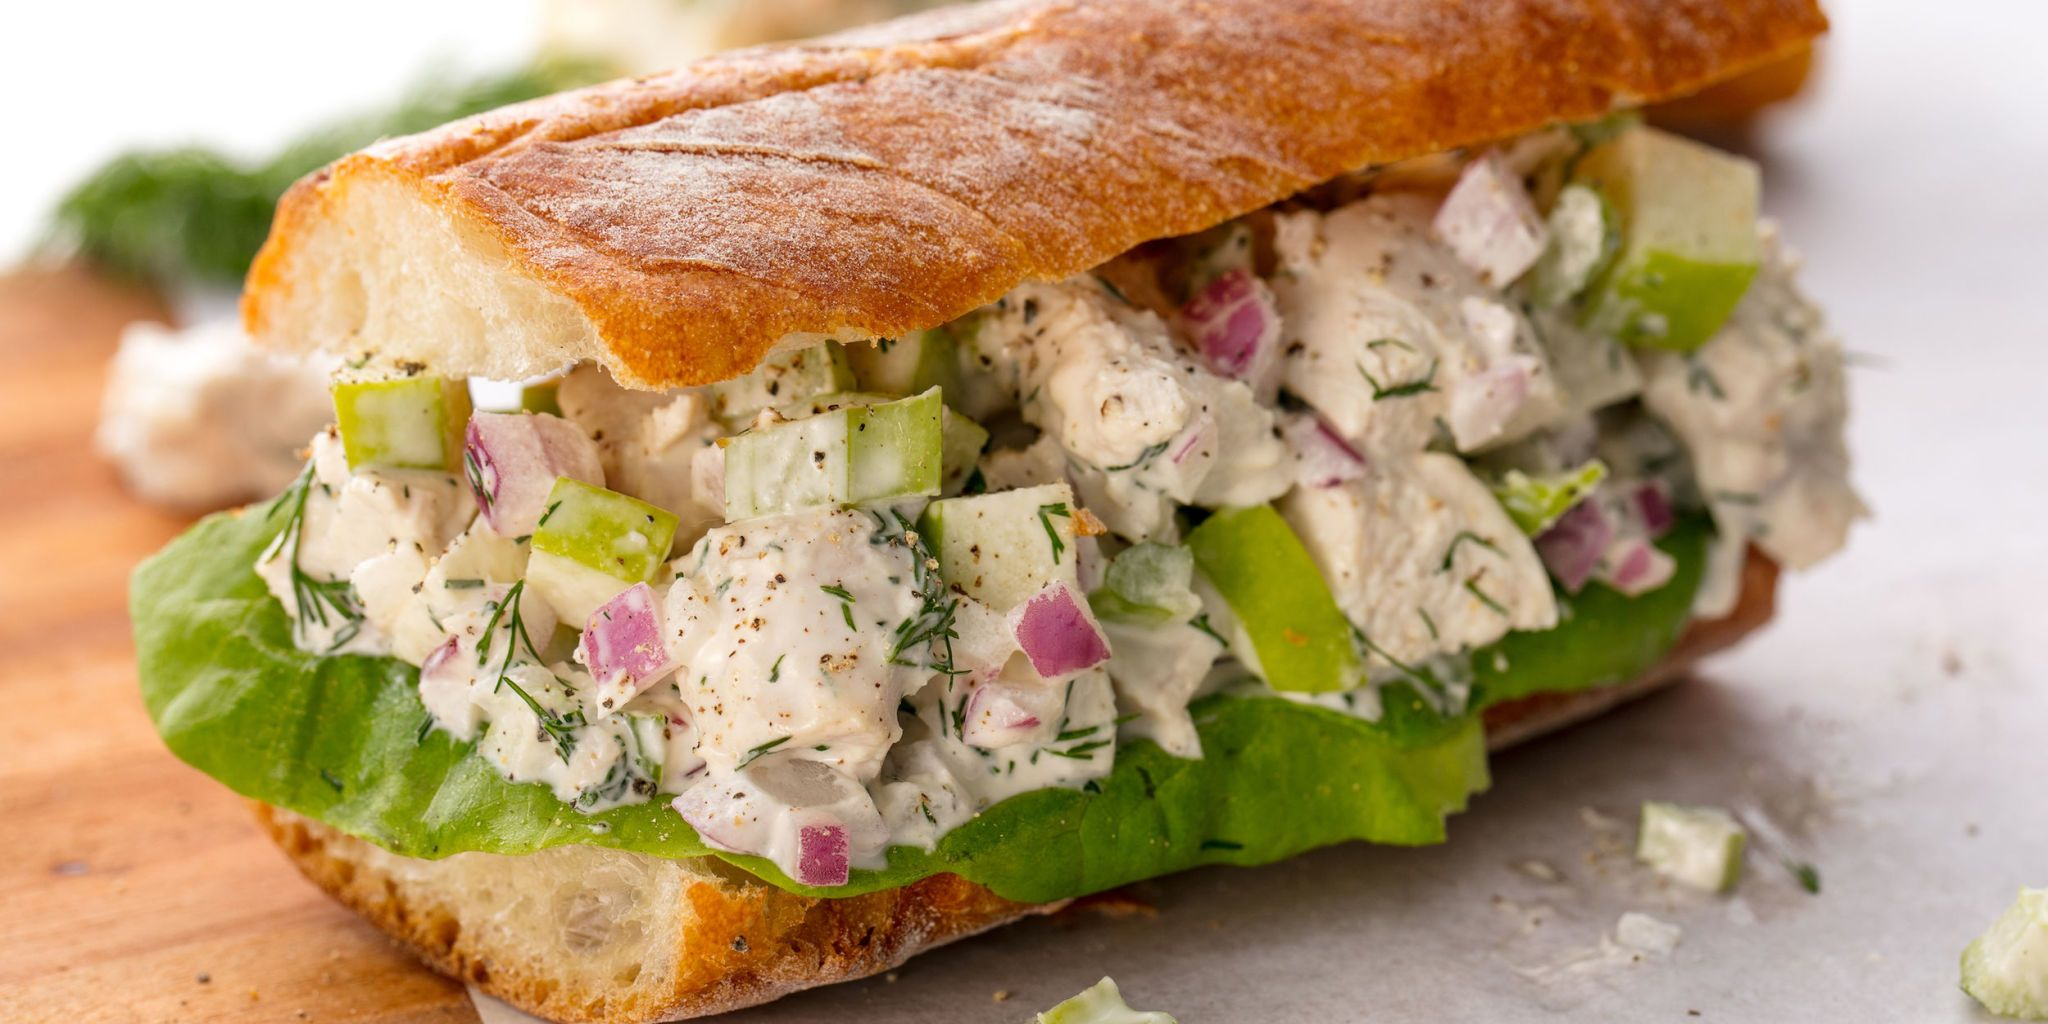 Best Chicken Salad Sandwich Recipe How to Make a